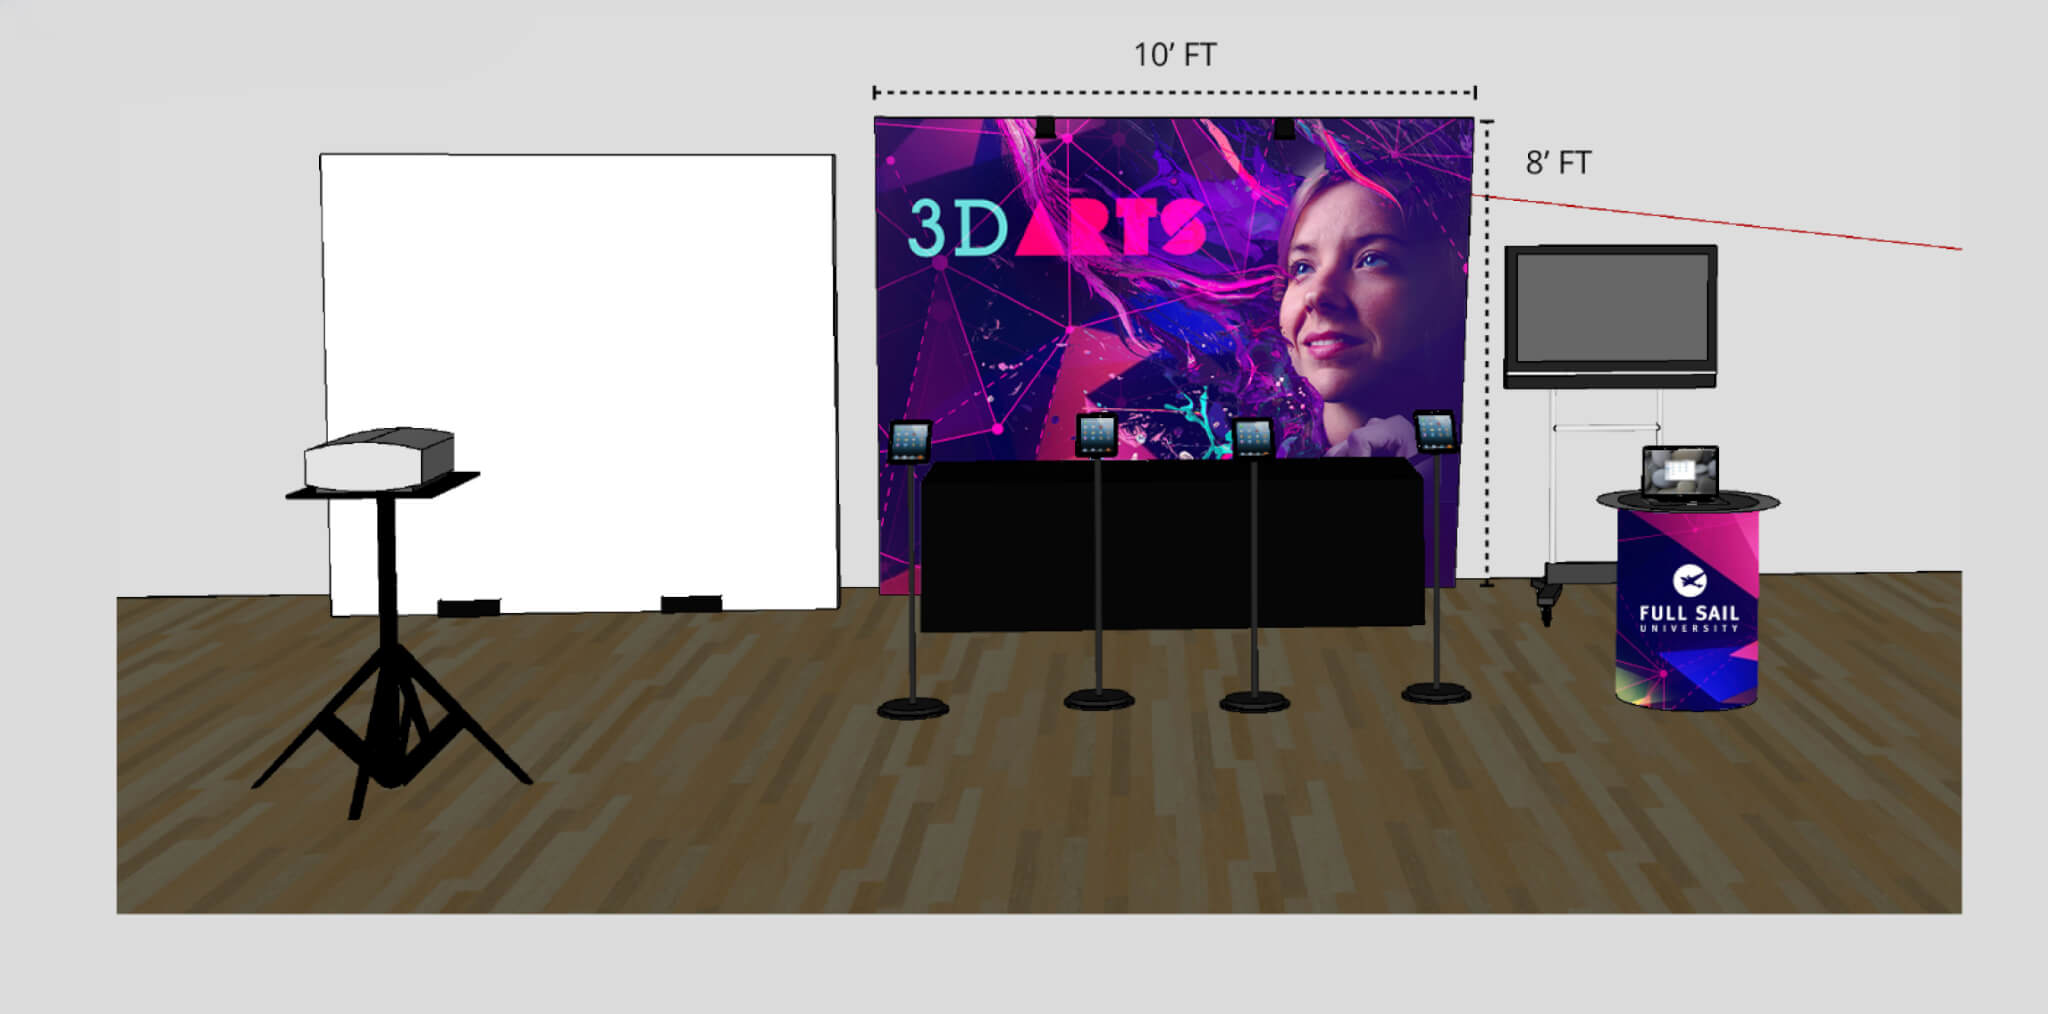 techfest_displaycomps_b-8cropped